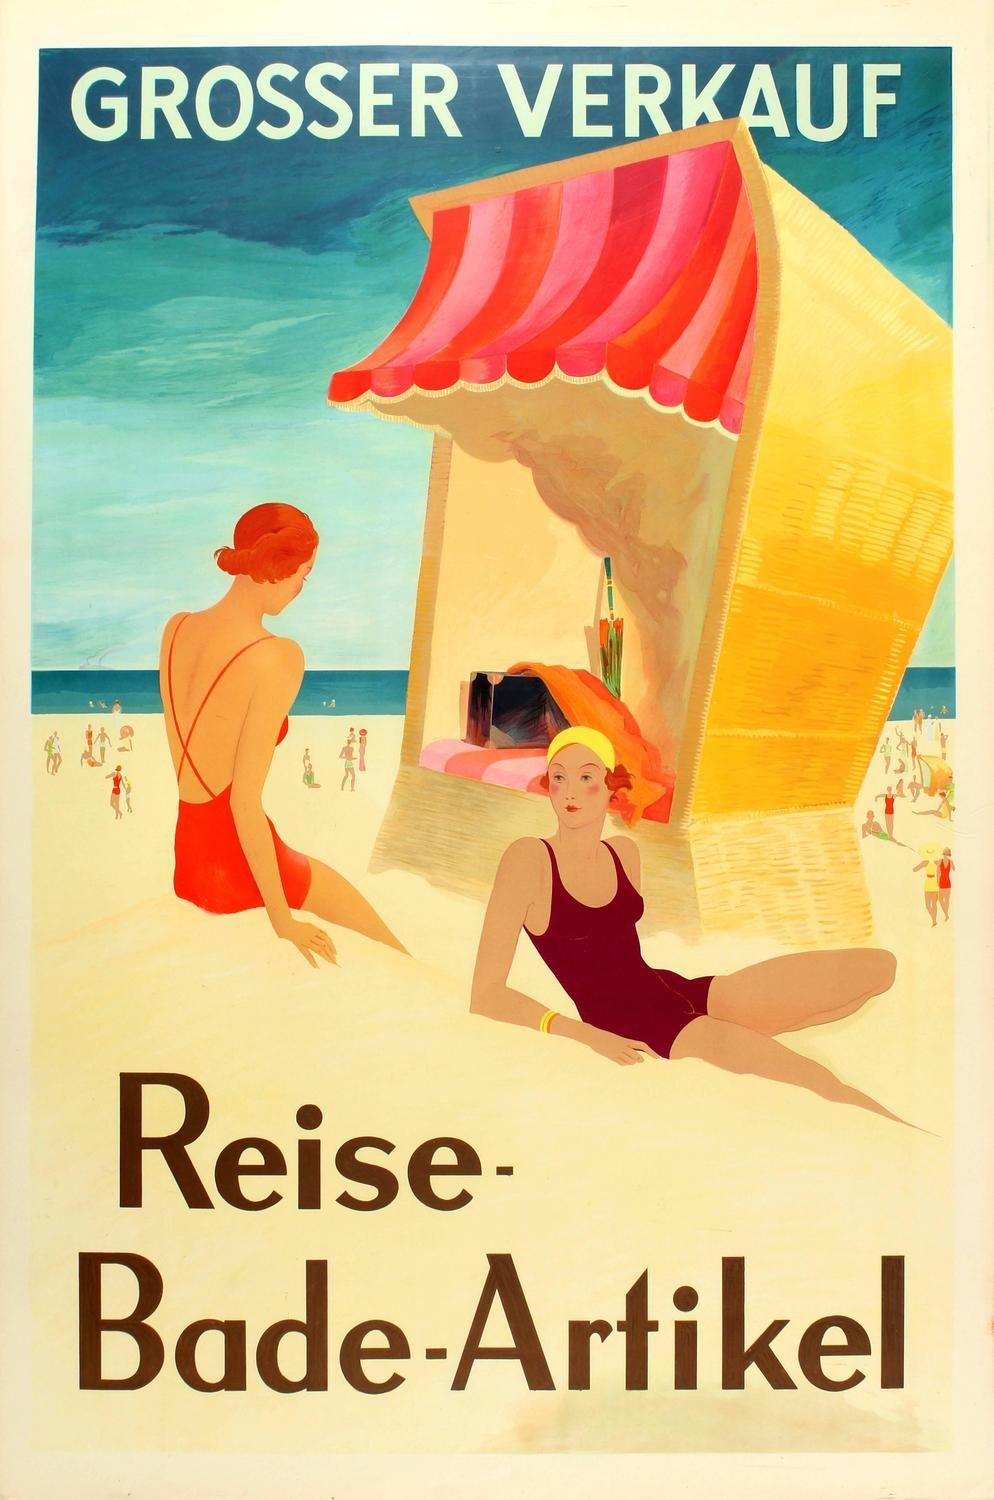 Unknown Original Art Deco Poster For A Big Sale Of Holiday Travel And Swimming Accessories Art Deco Poster Beach Canvas Retro Travel Poster